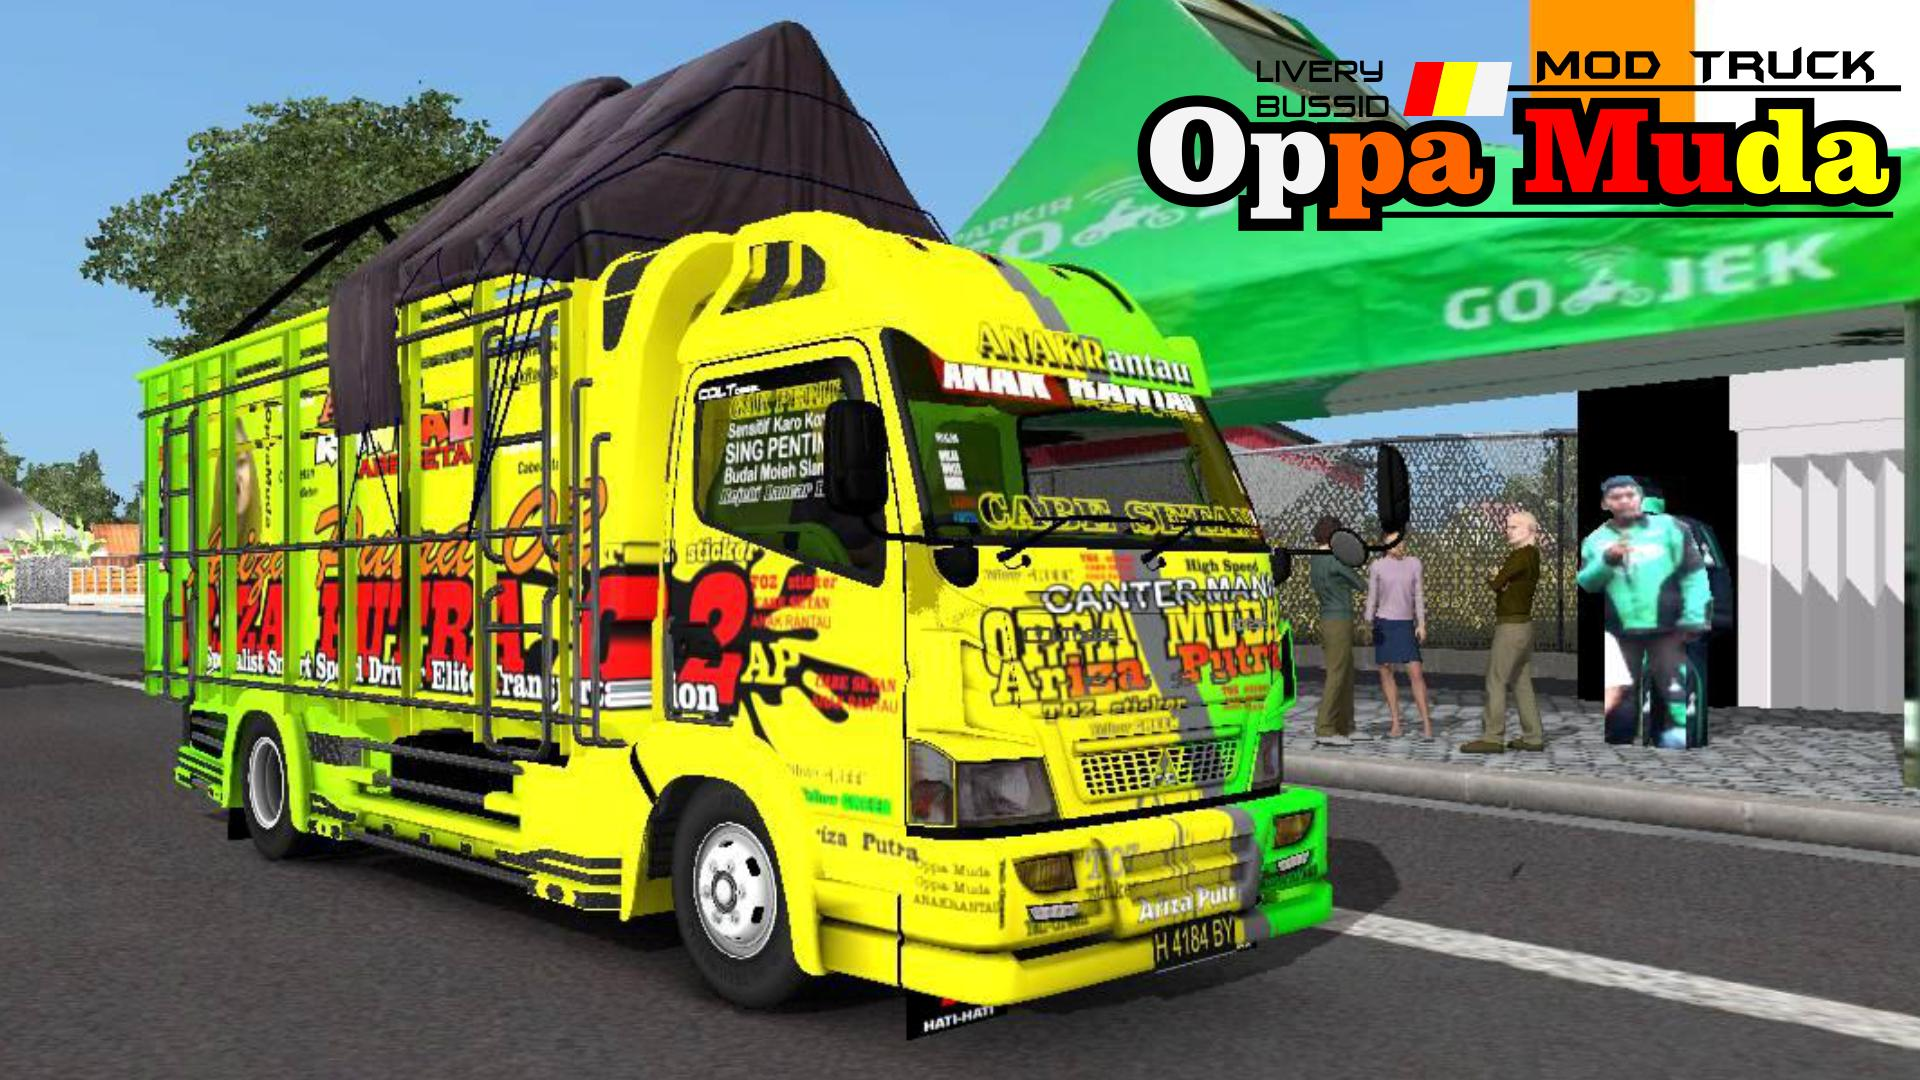 Livery Bussid Mod Truck Oppa Muda Lengkap For Android Apk Download